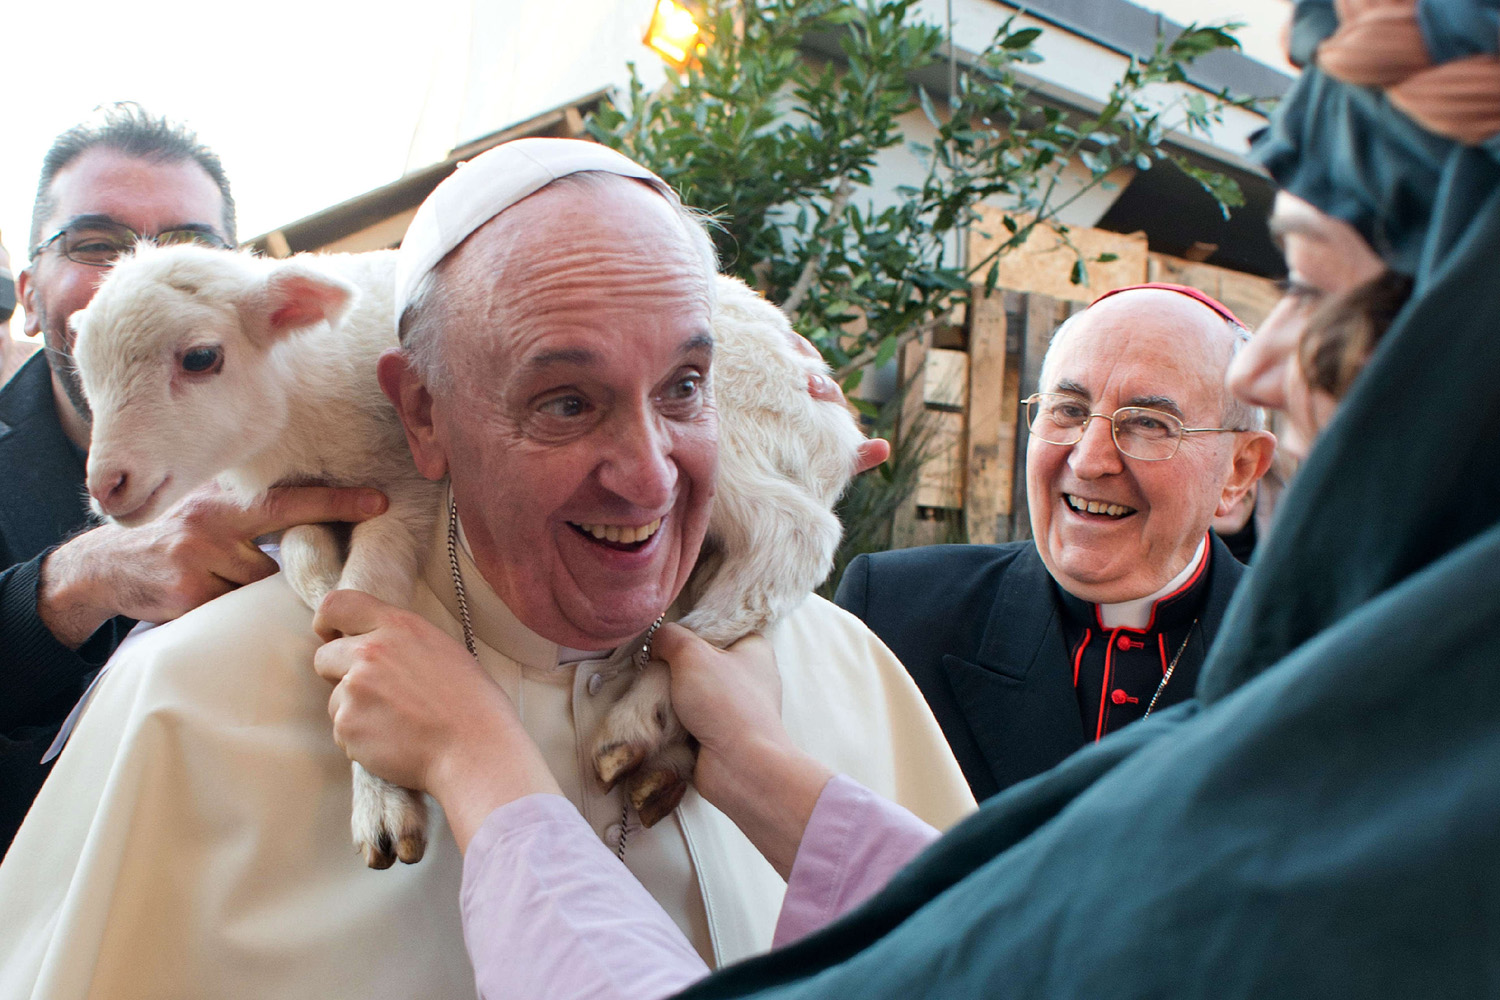 Jan. 6, 2014. This handout picture released by the Vatican press office shows Pope Francis (L) carrying a lamb on his shoulders as he visits the parish of the Sant'Alfonso Maria de Liguori during the Epiphany day in Rome.